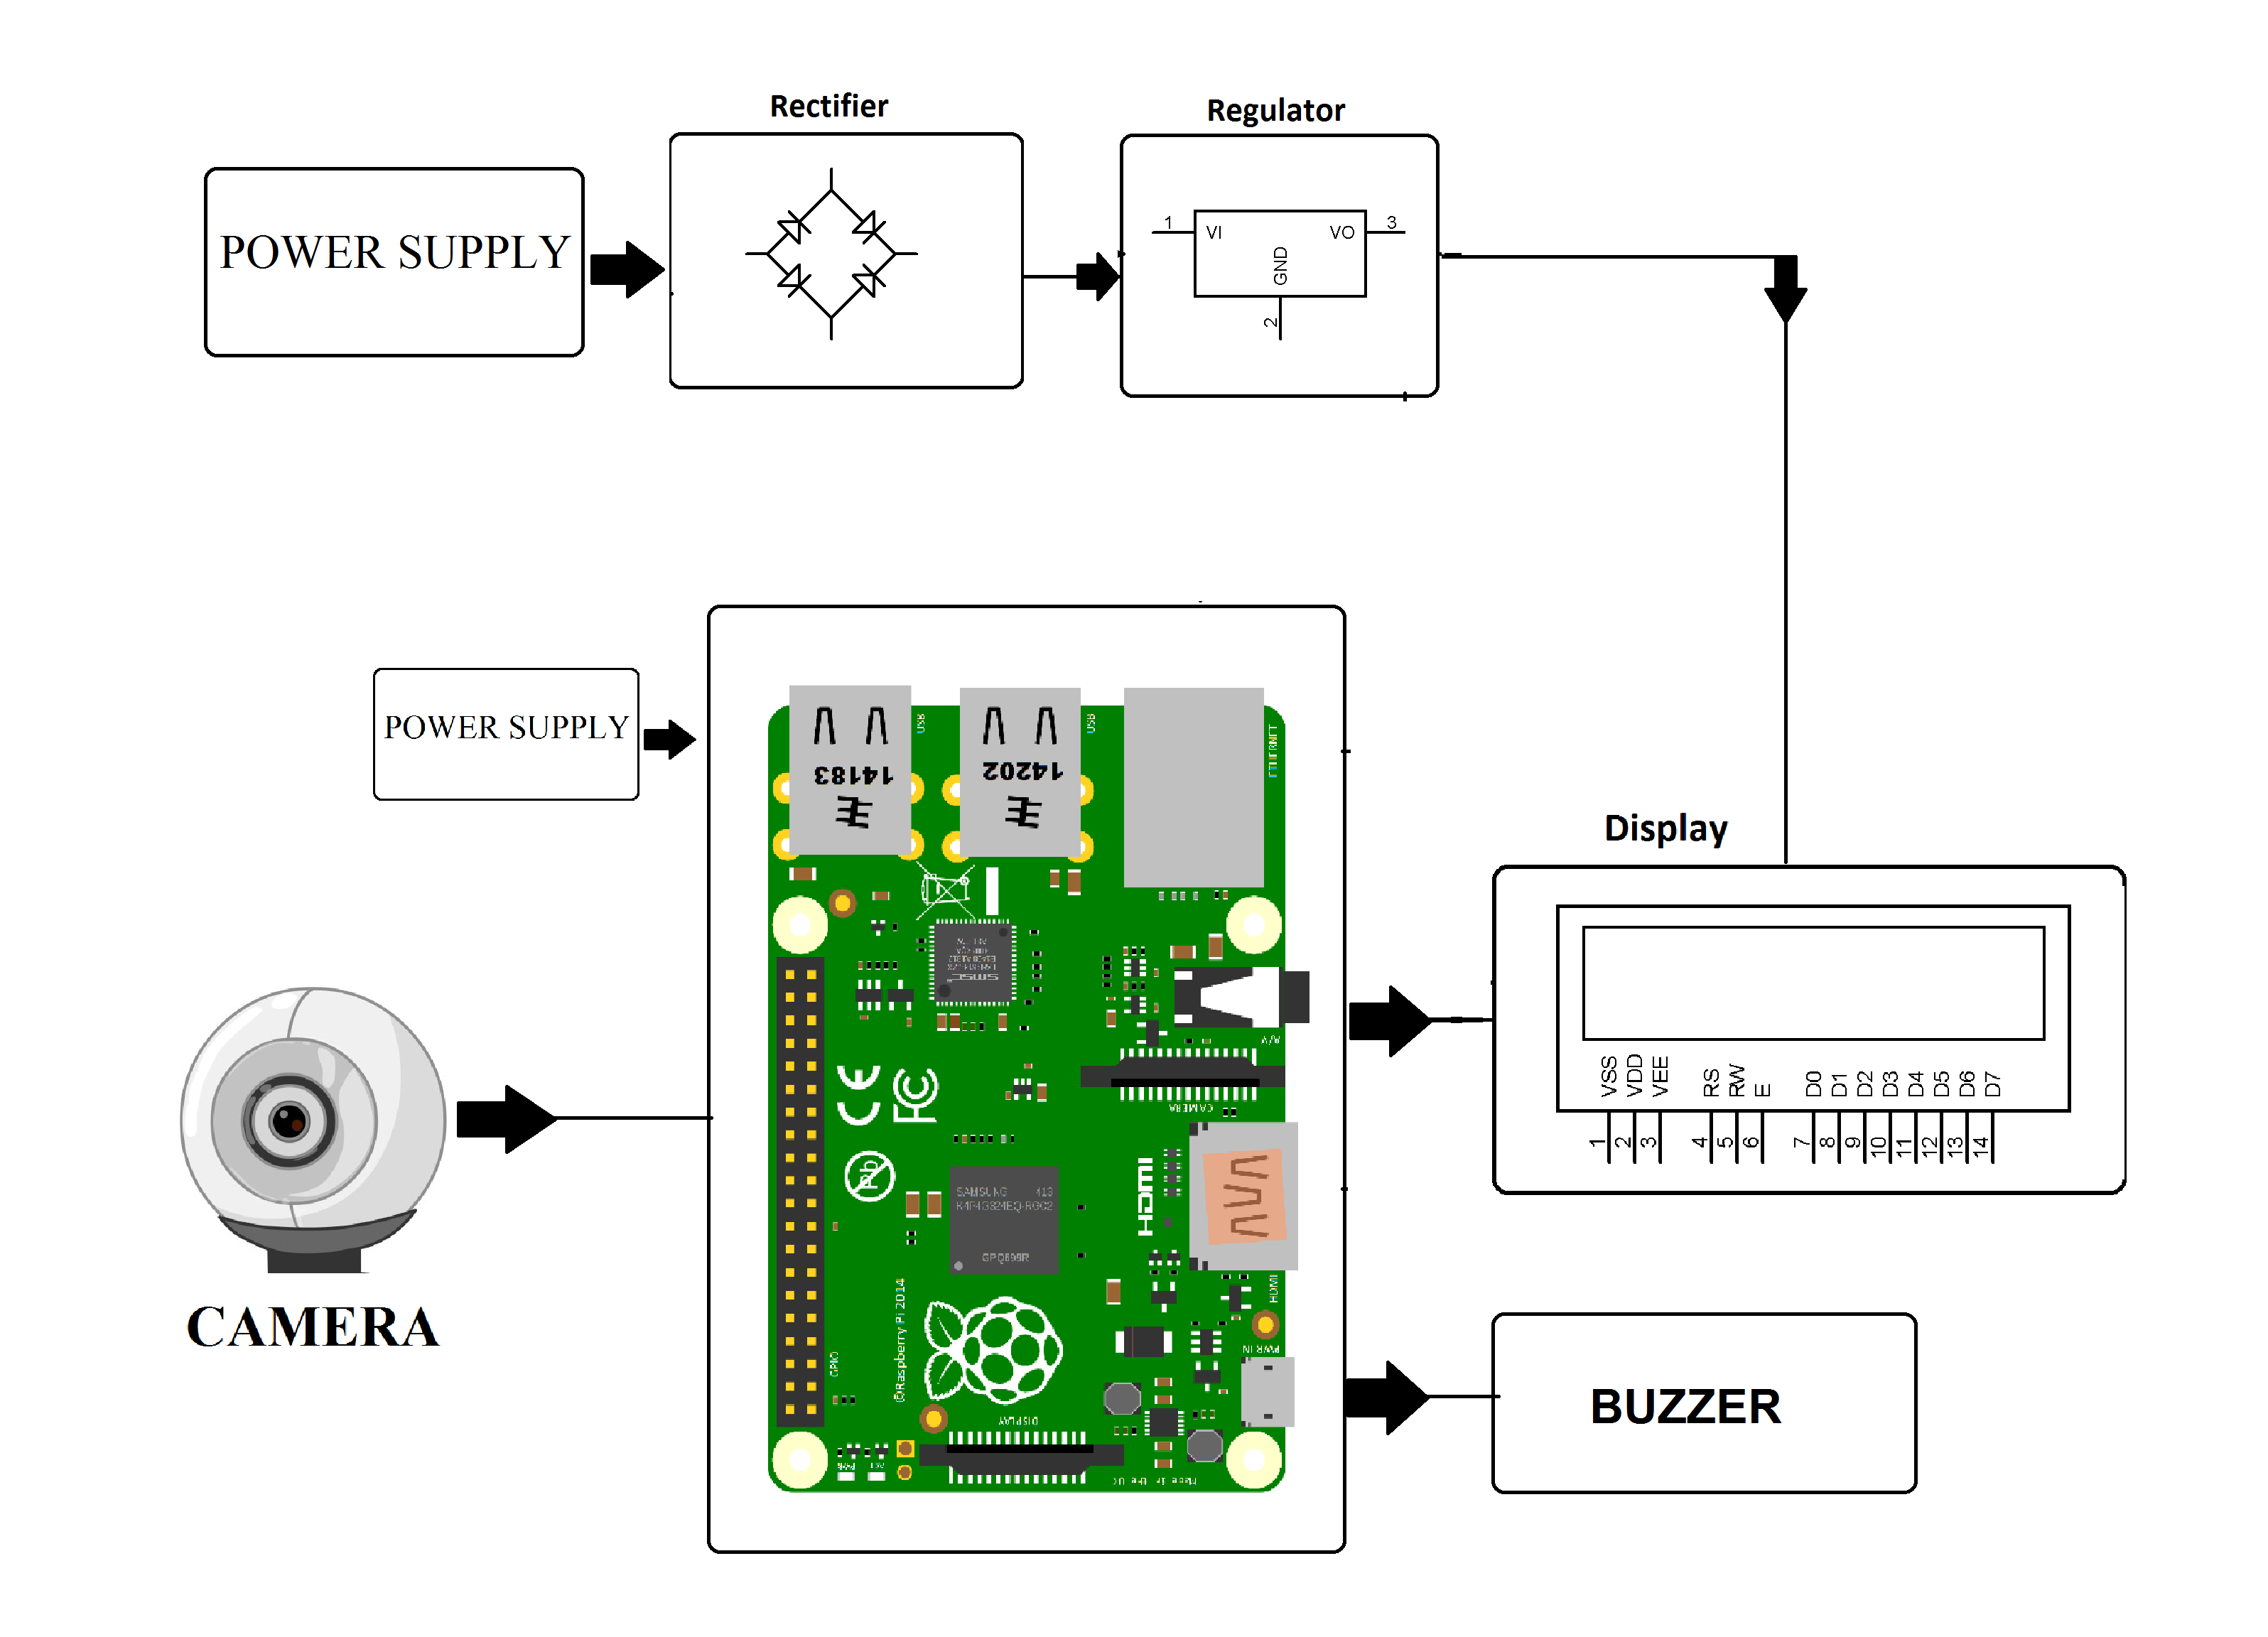 434496 besides How To Build A Gsm Cellular Panic Alarm Using Arduino in addition Microcontroller Based Anesthesia Inject 32899013 likewise Secured Roomm Access System Mic Lock Cord besides Fingerprint Based Voting Machine. on alarm system block diagram